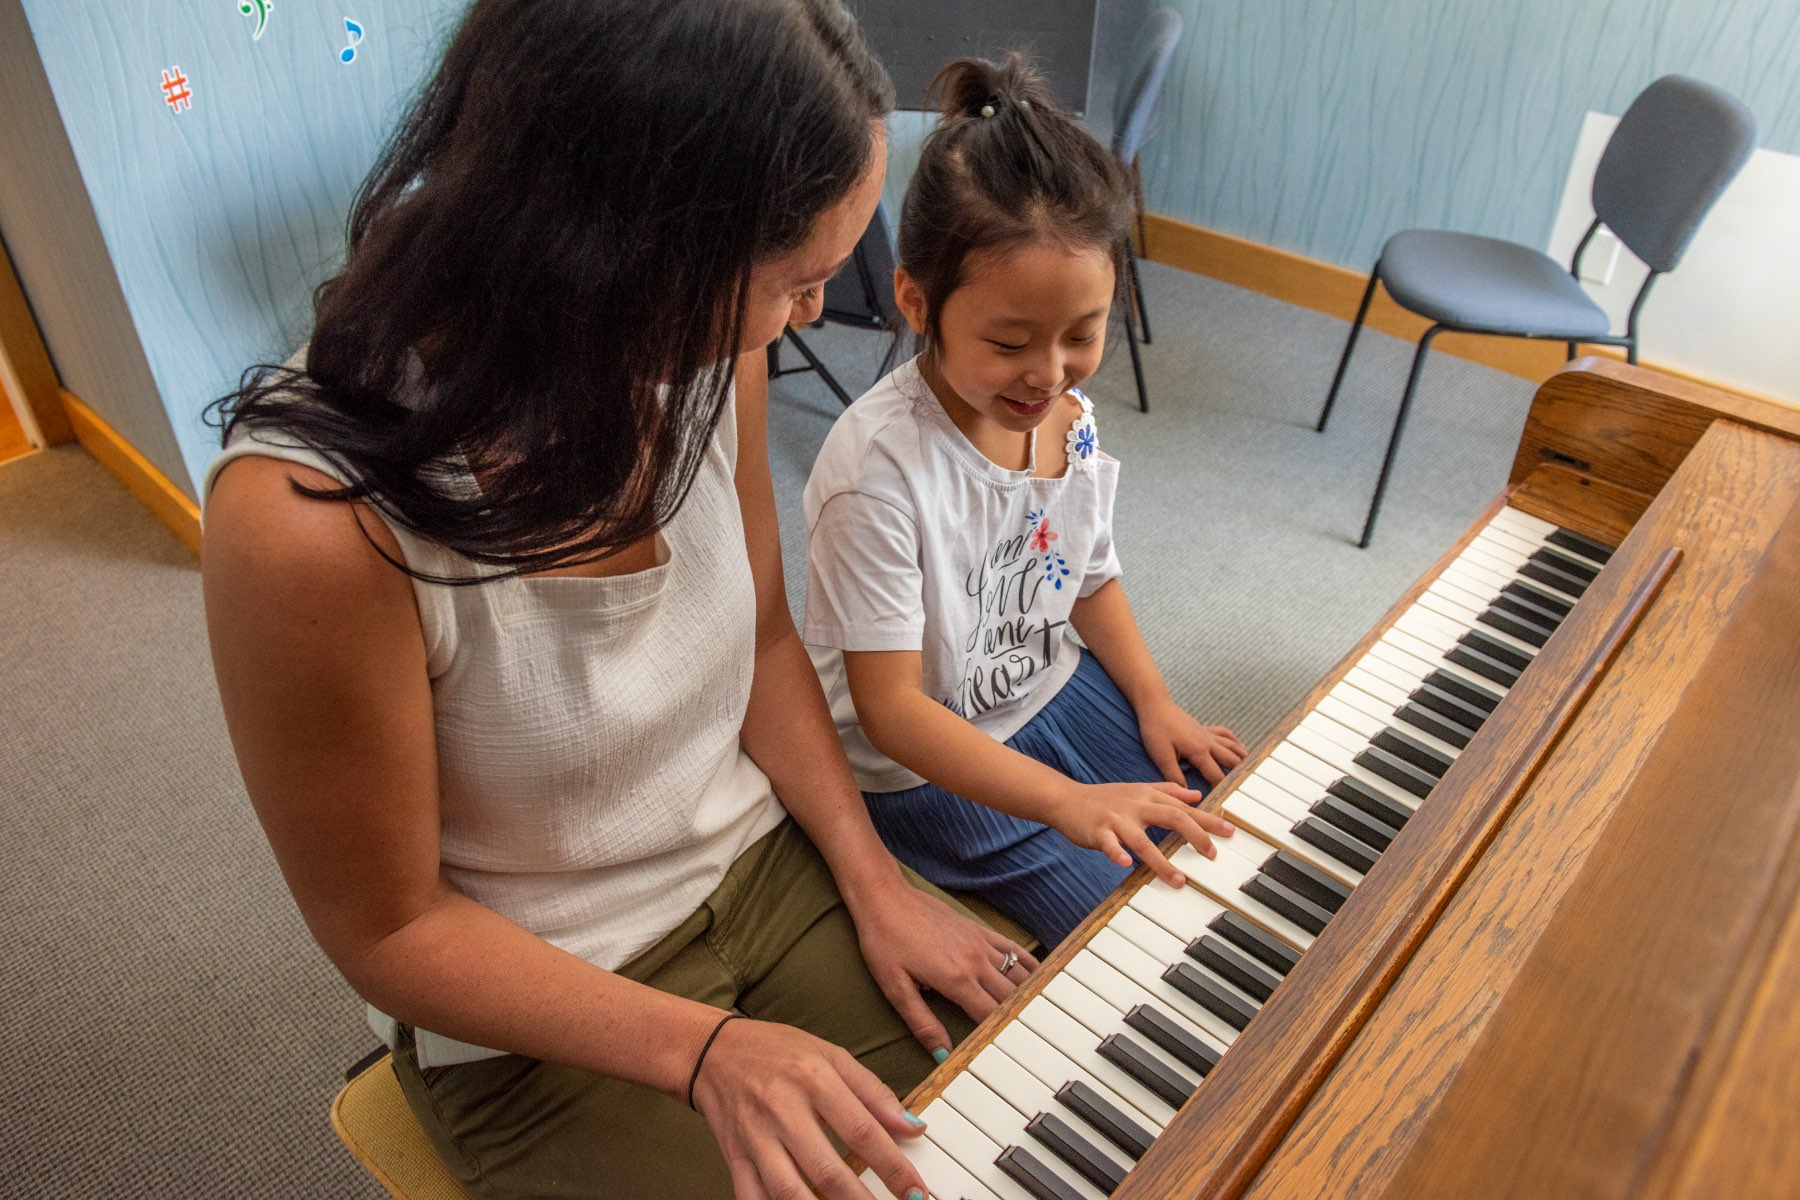 Student and teacher enjoy piano lesson.